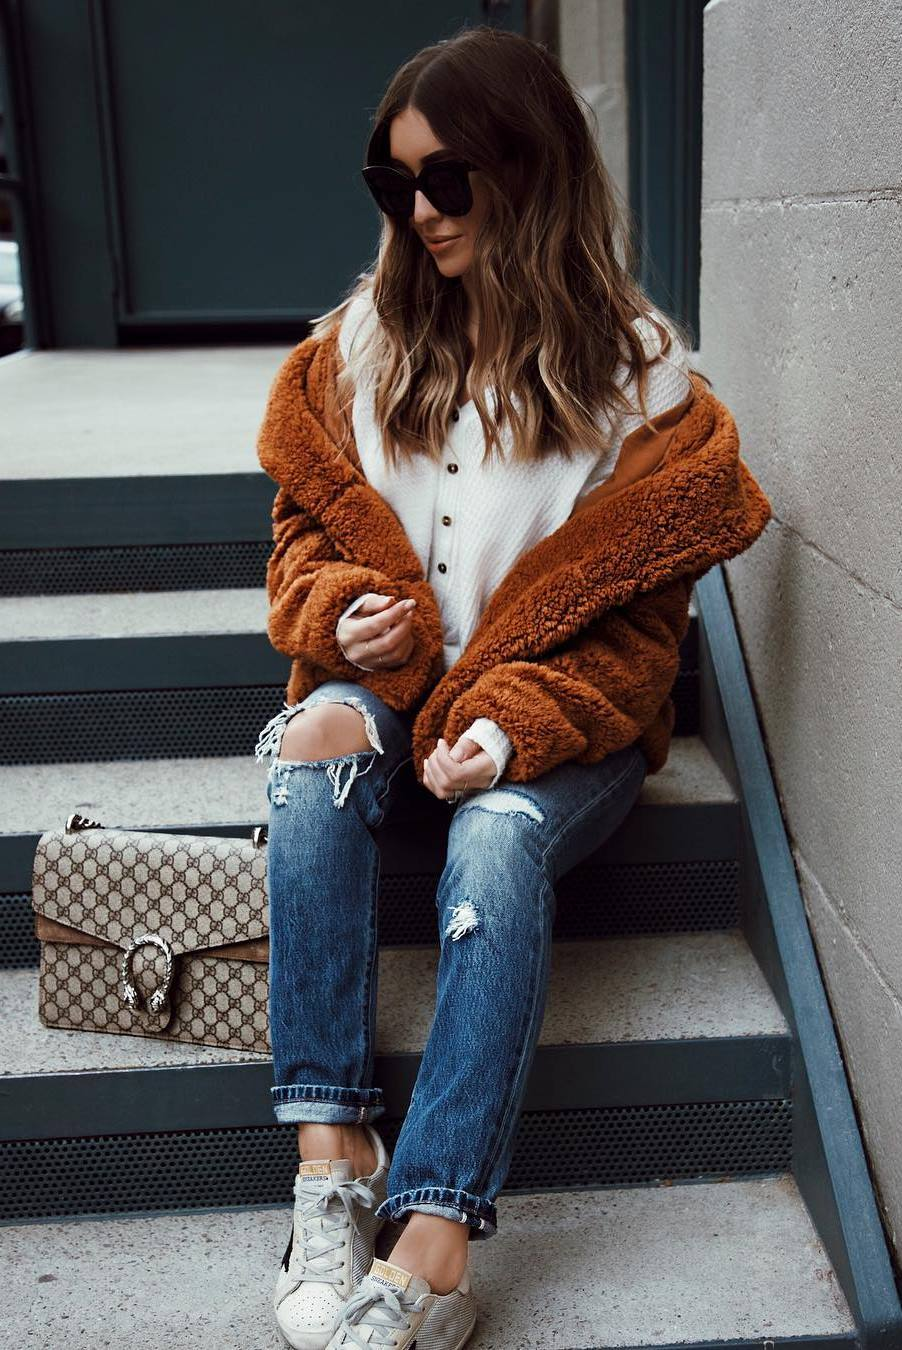 outfit of the day | rips + sneakers + bag + white top + brown fur jacket